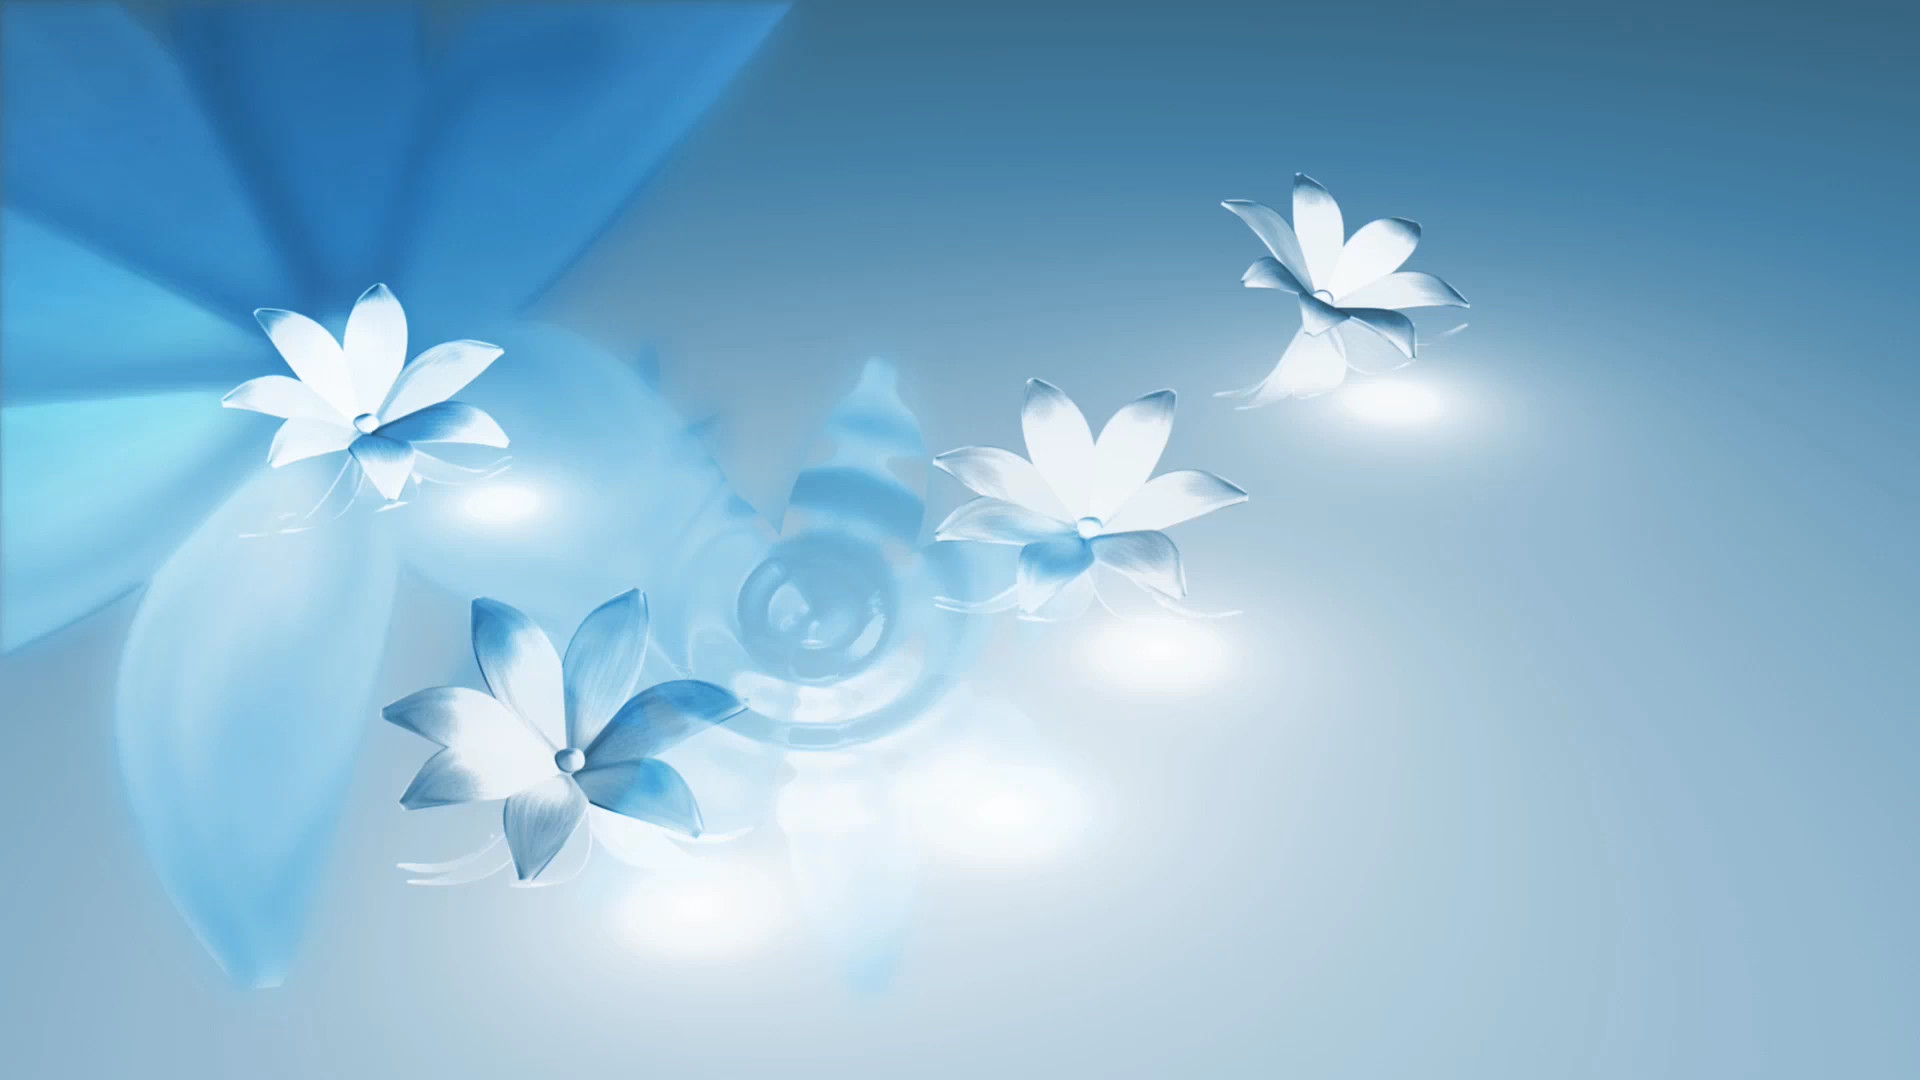 Res: 1920x1080, Blue Flowers Background 35 Free Hd Wallpaper